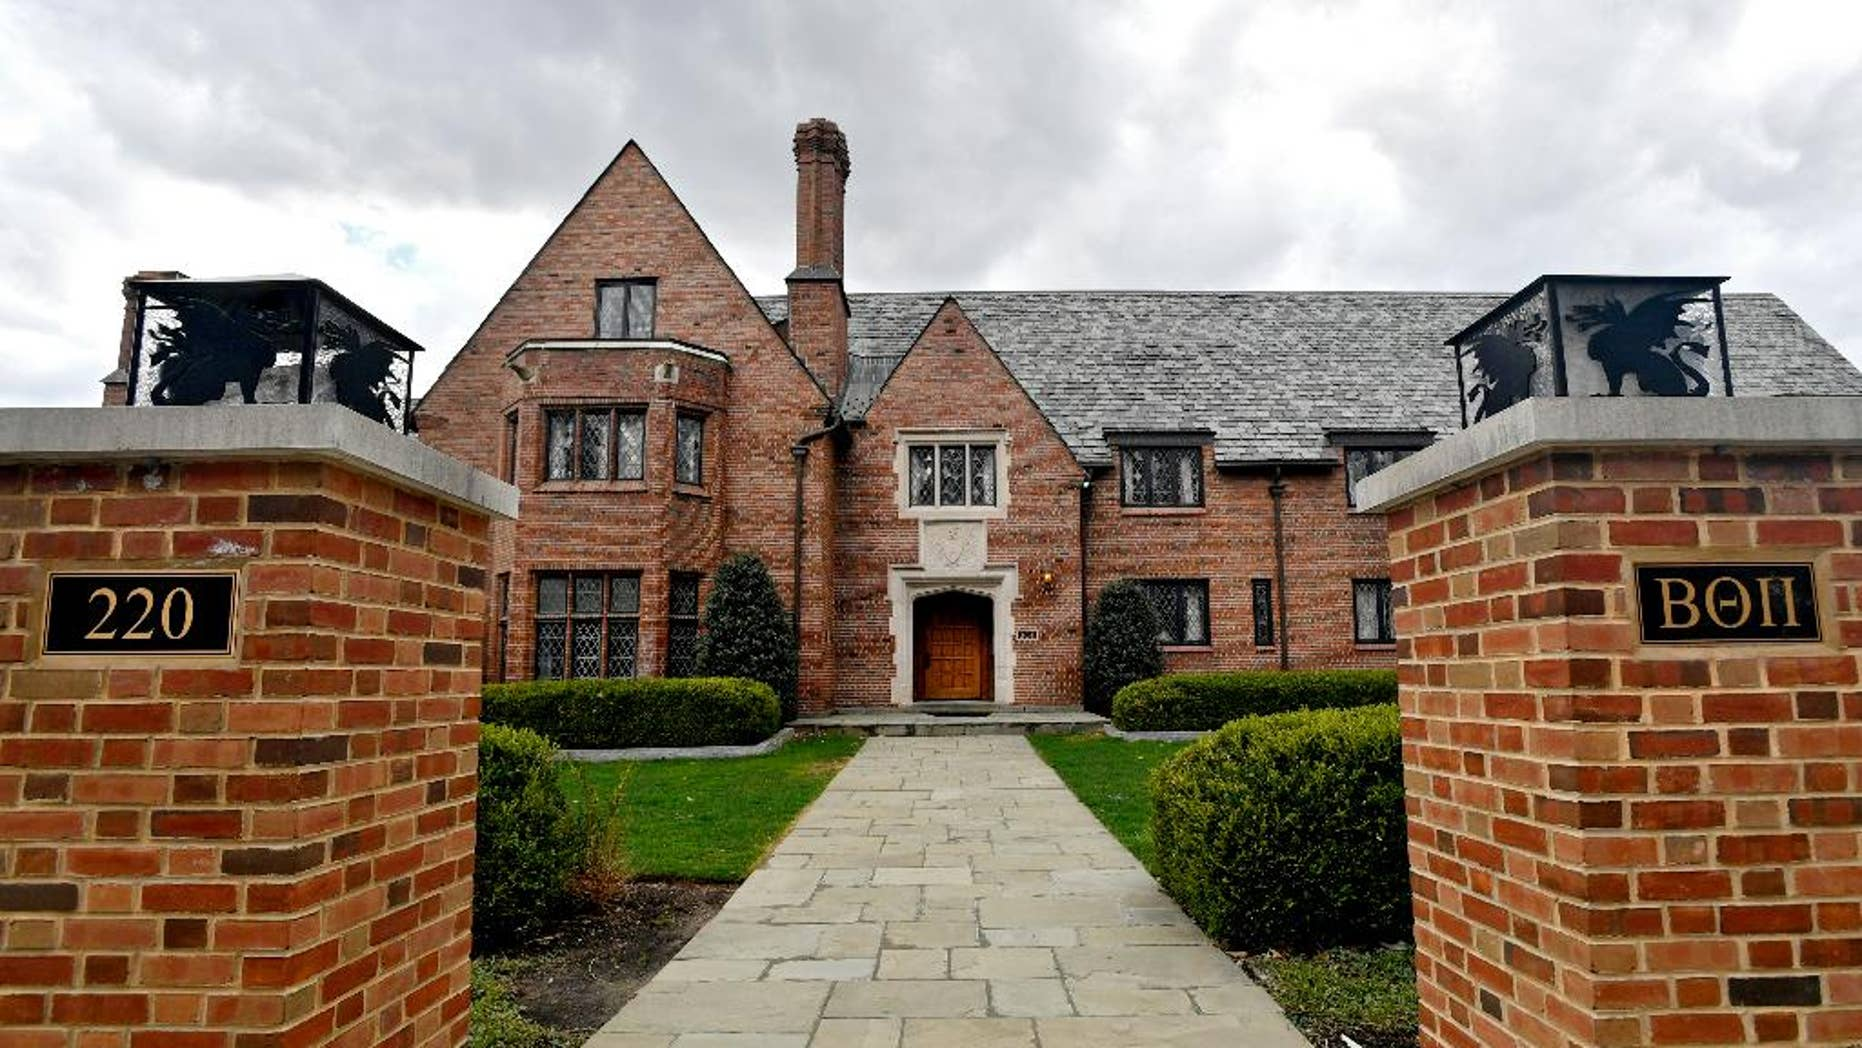 The former Penn State Beta Theta Pi currently sits empty on Burrowes Road after being shut down.  A Penn State fraternity pledge died after stumbling and falling several times with toxic levels of alcohol in his body and suffered for hours with severe injuries while his friends failed to summon help, authorities said Friday, May 5, 2017, in announcing criminal charges against the fraternity and 18 of its members.(Abby Drey/Centre Daily Times via AP)